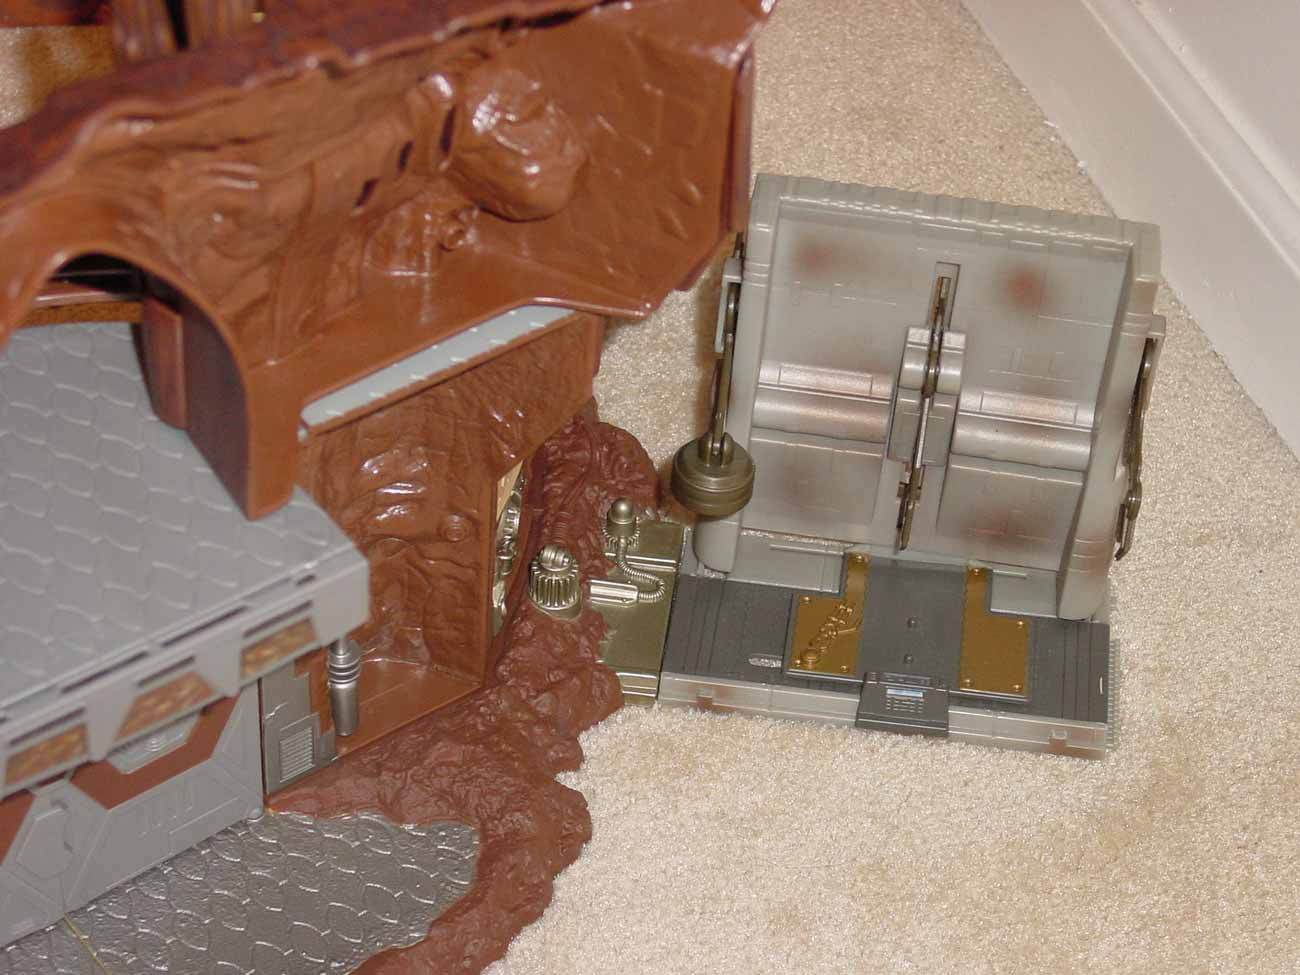 STAR WARS AOTC GEONOSIS BATTLE ARENA SECRET HANGAR DROID FACTORY FACTORY FACTORY 13fc66